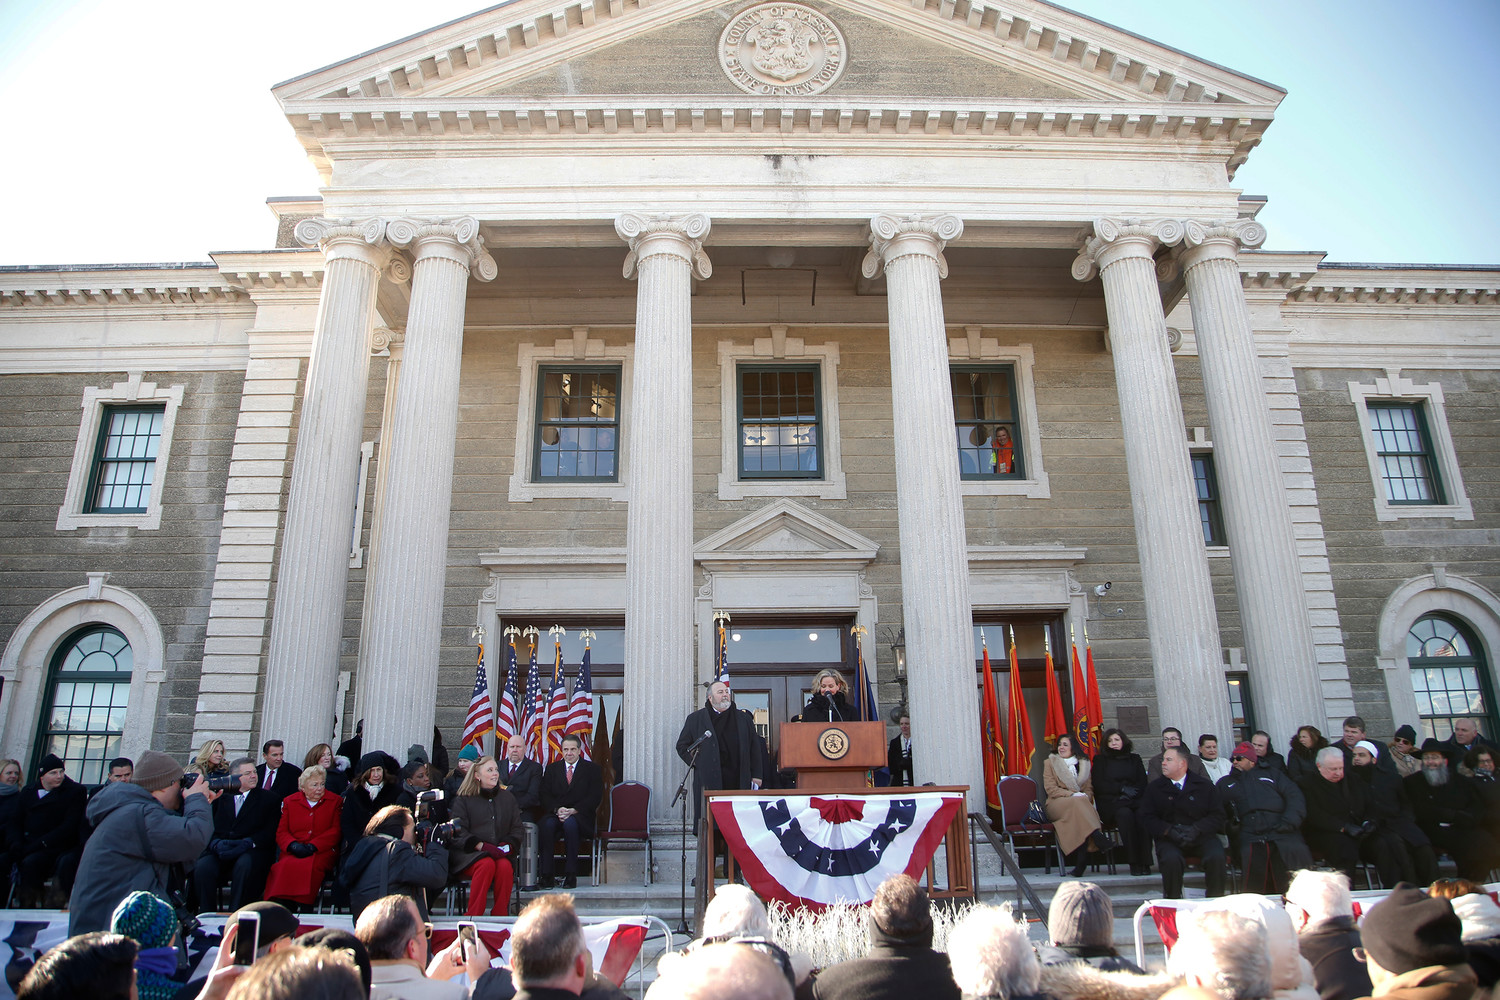 Curran made her first address as county executive before a crowd of hundreds of onlookers, who braved below-freezing temperatures to be a part of the ceremony.